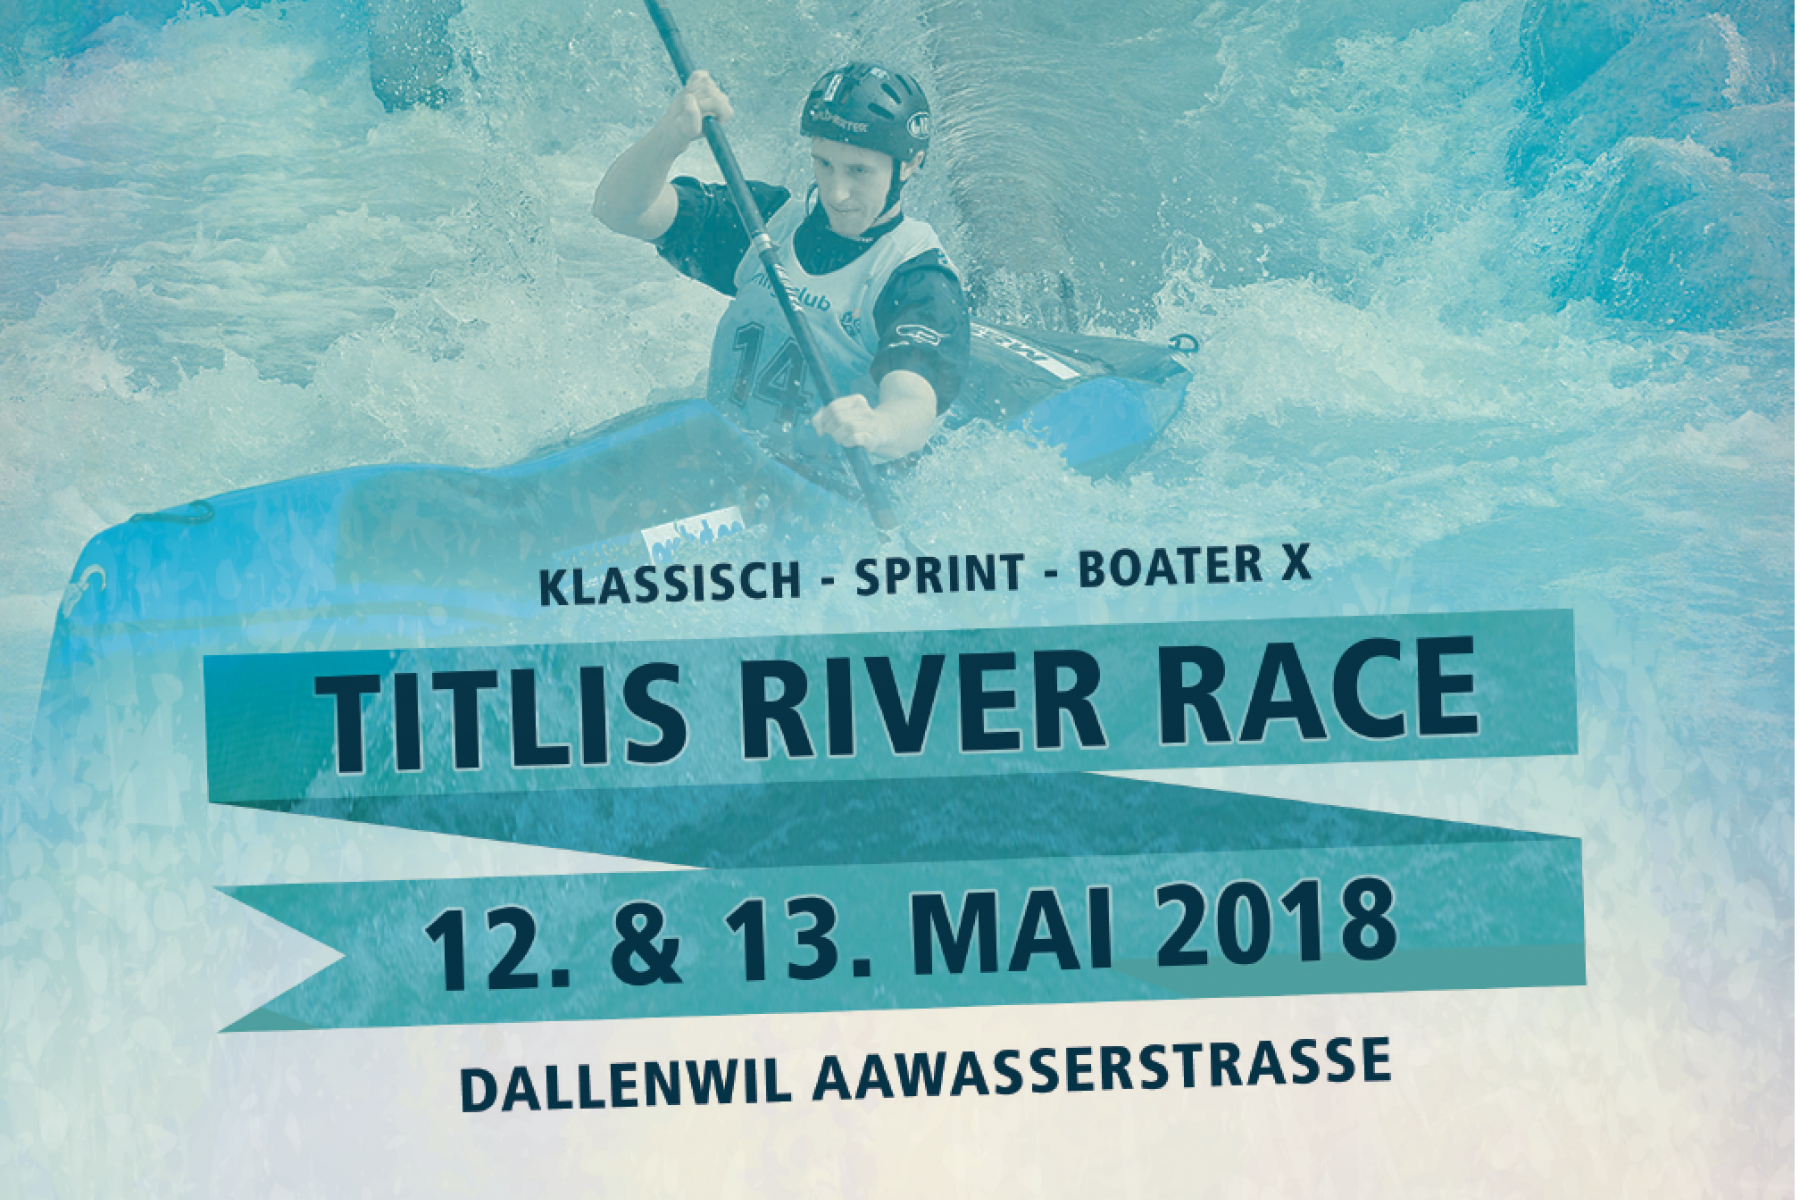 Titlis River Race 2018